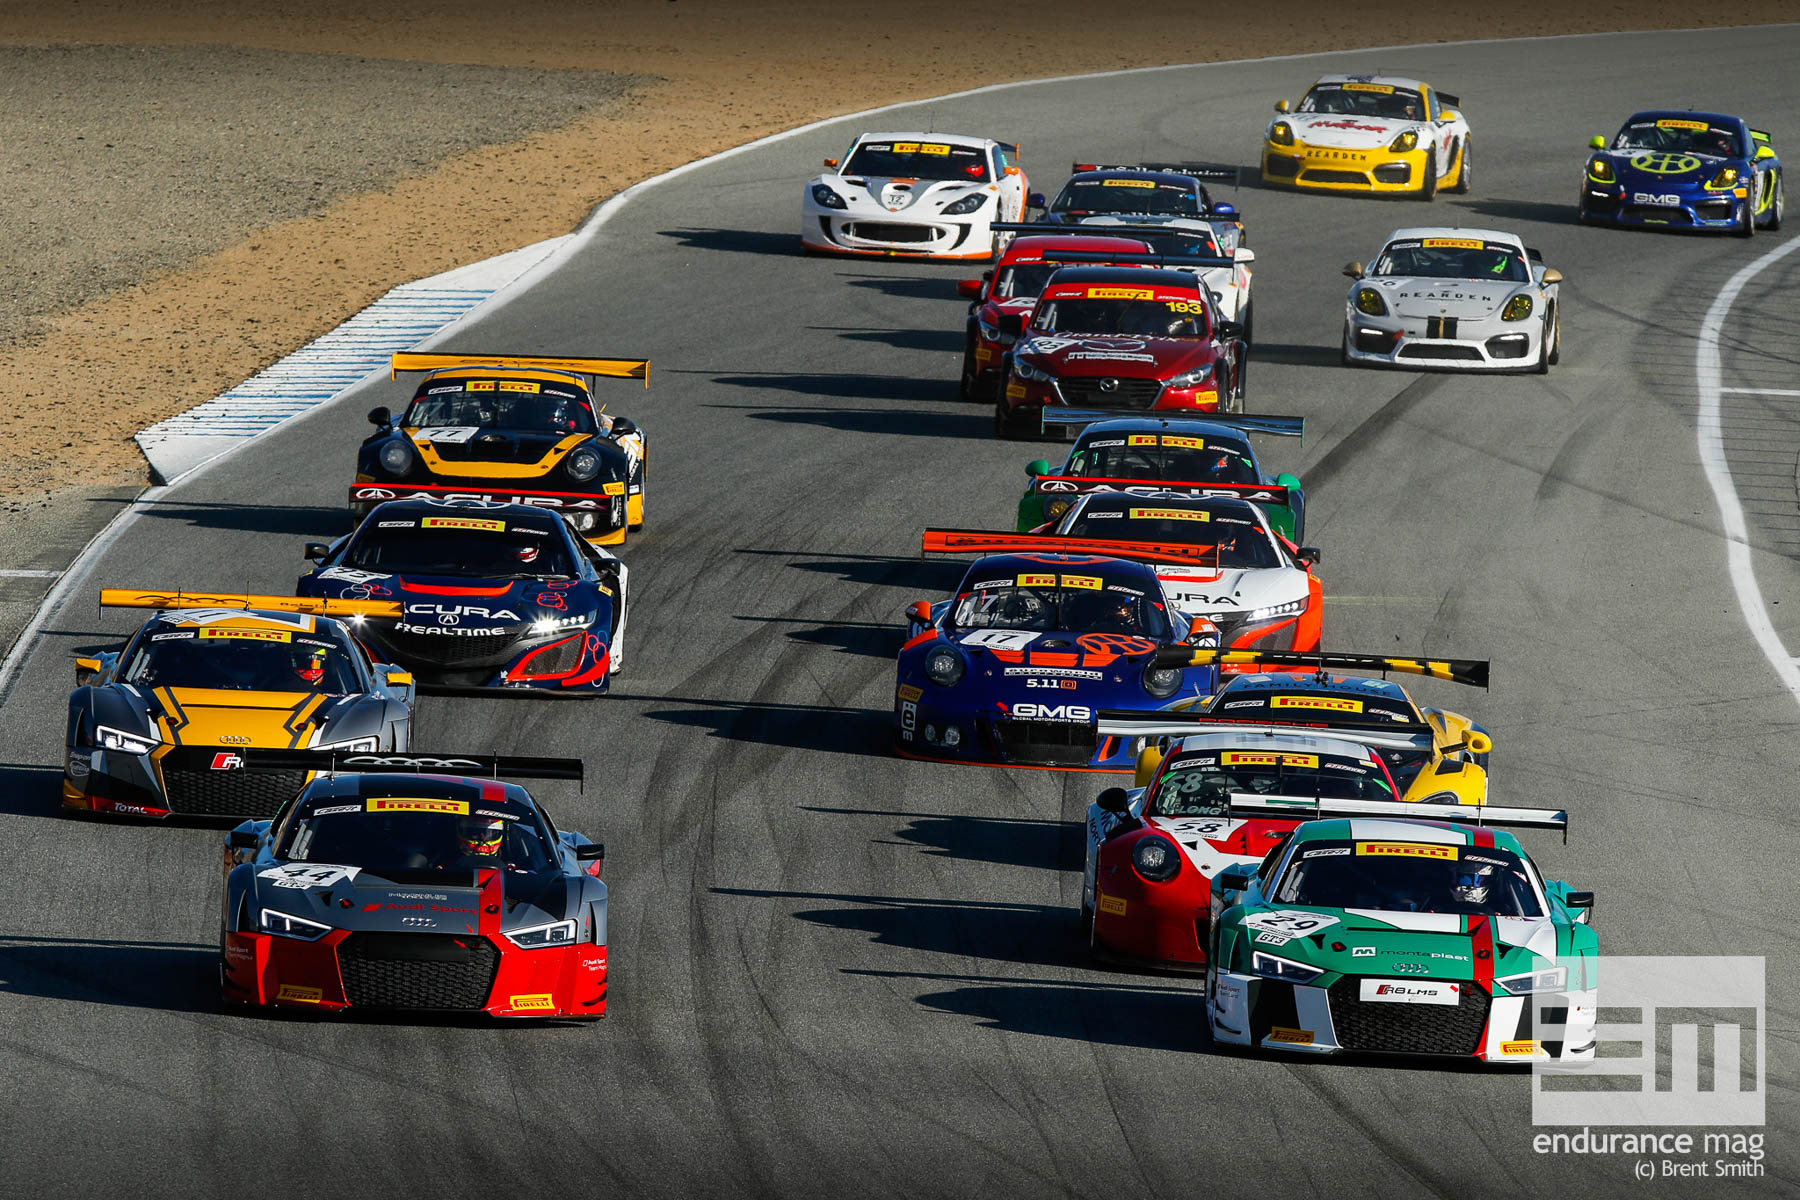 California 8 Hours - Intercontinental GT Challenge - Mazda Raceway Laguna Seca - Start